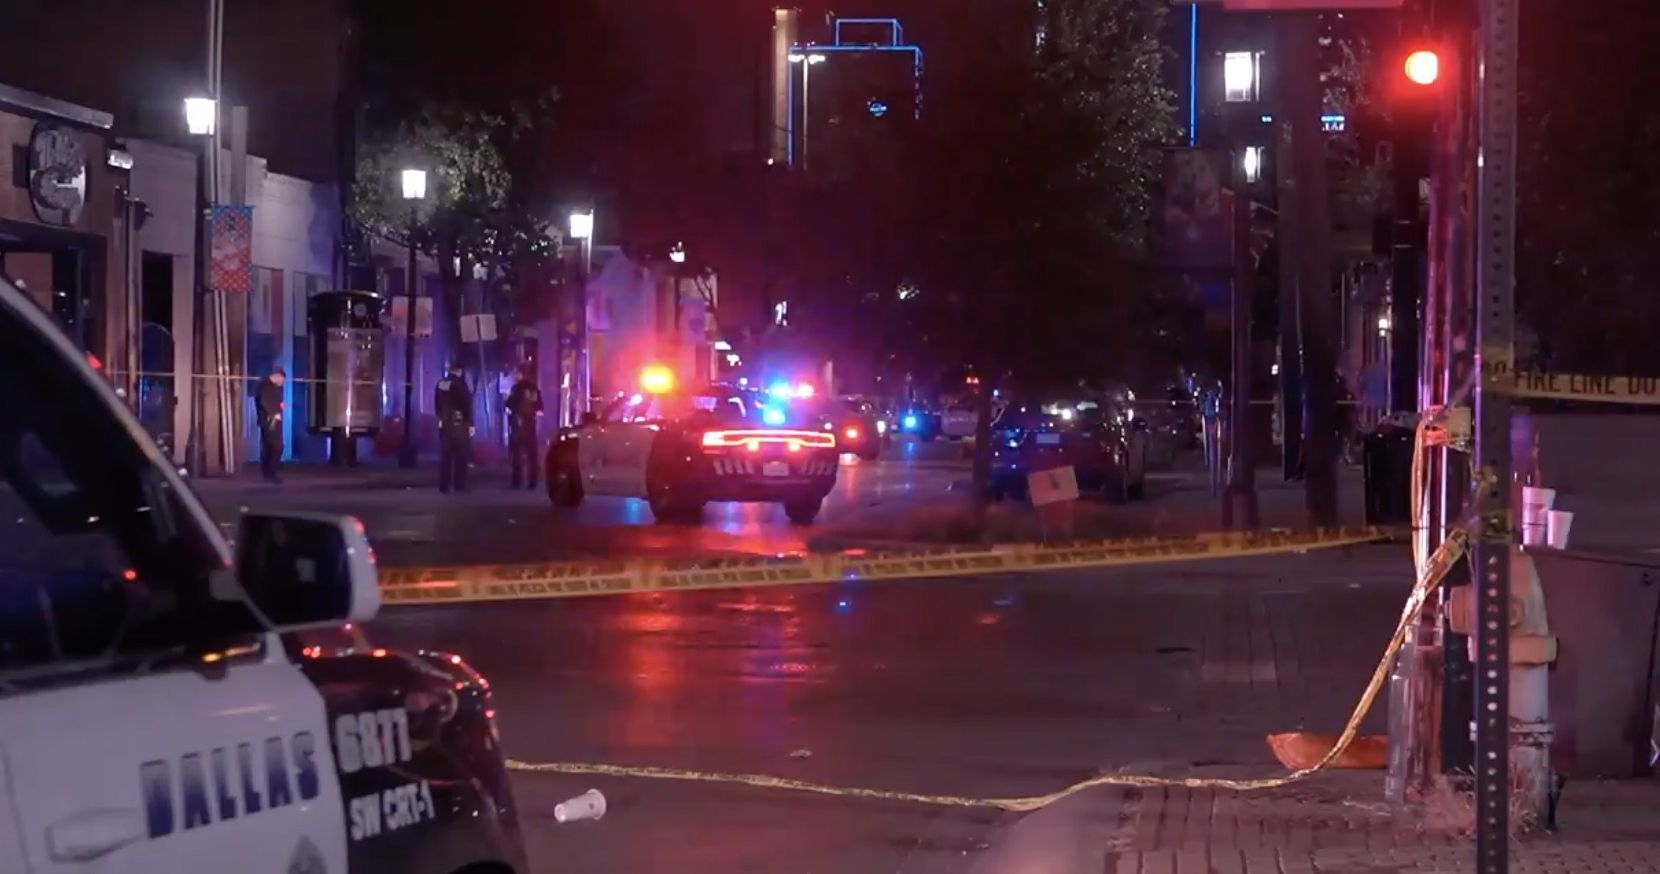 One person was killed and five others were injured, one critically, after a shooting early Sunday, September 19, 2021 in Deep Ellum, police said. One man was arrested but it s unclear if he is connected to the slaying and injuries.